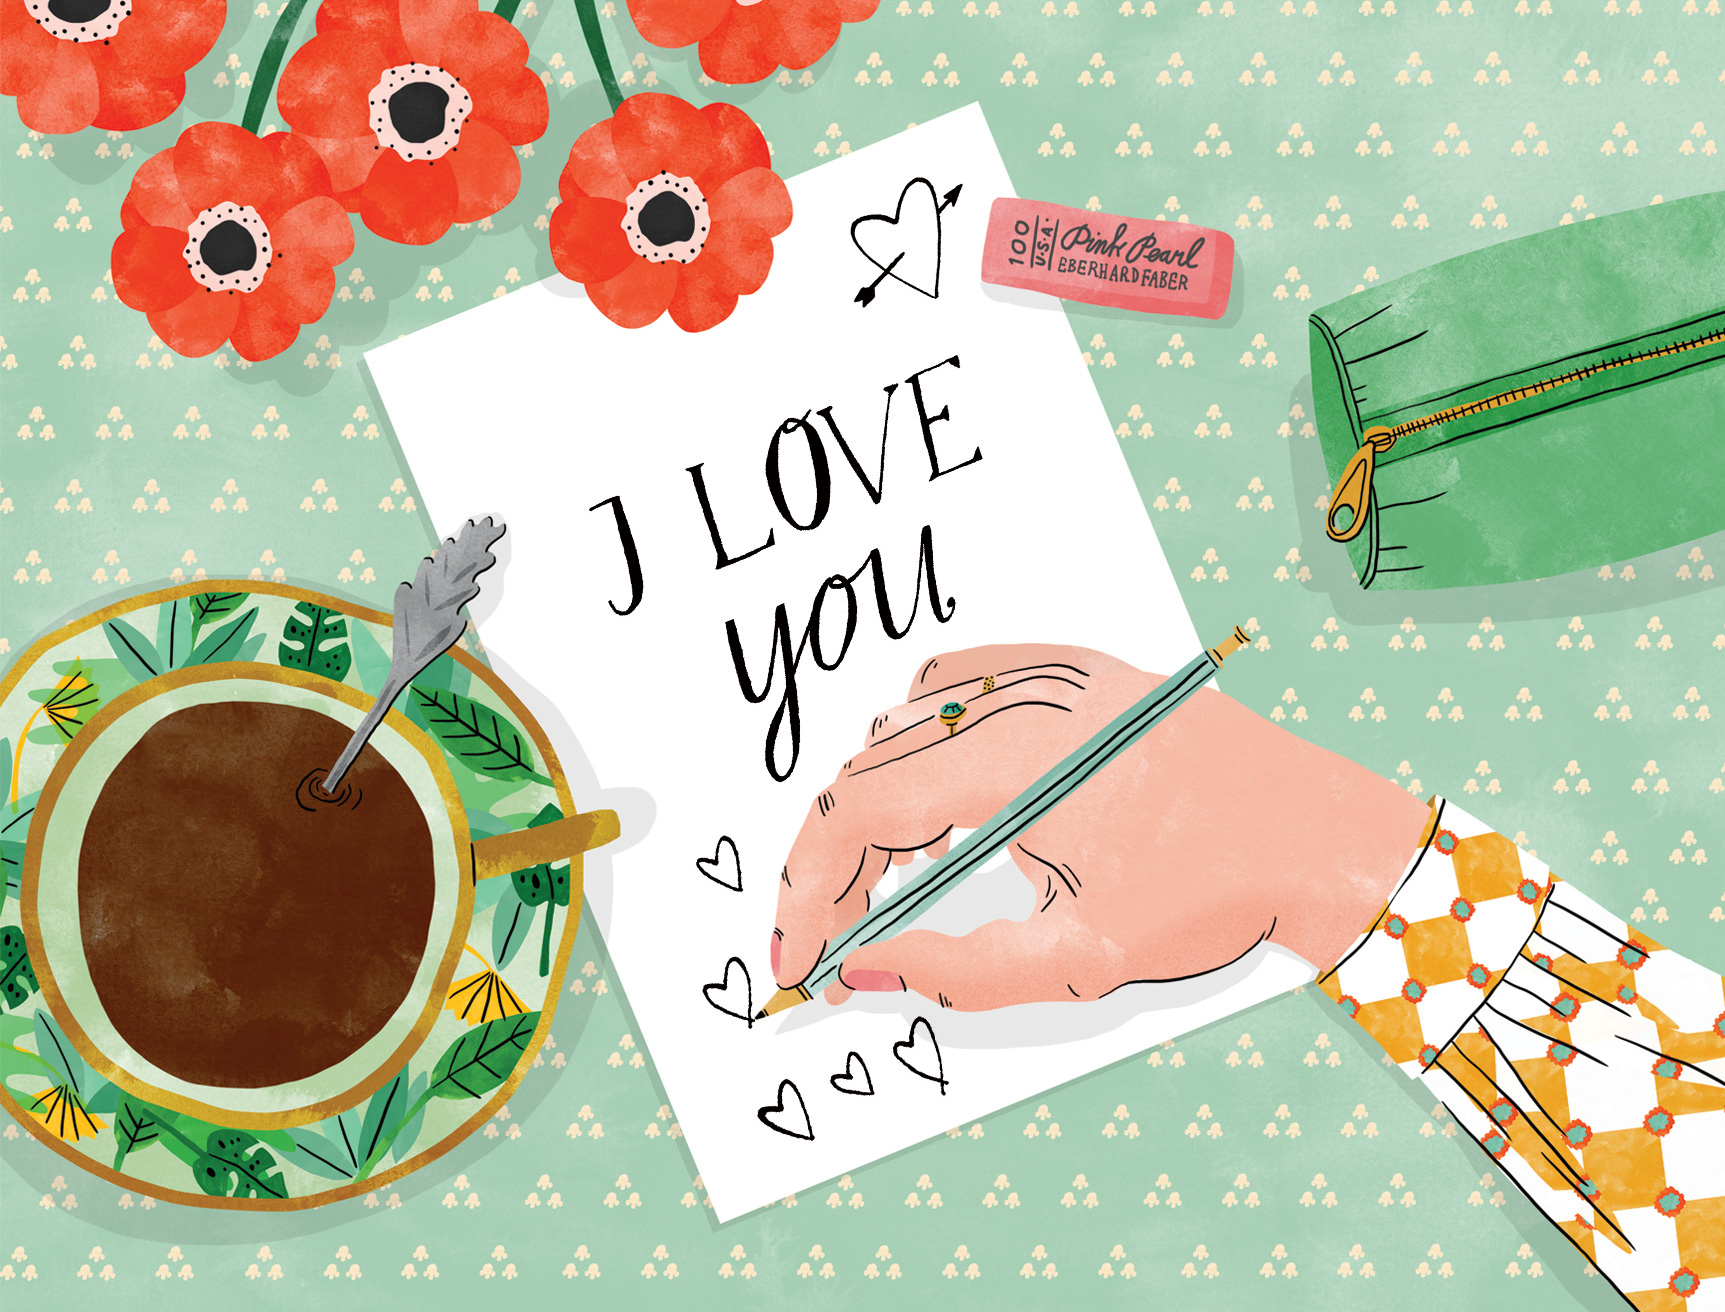 Illustration of a hand writing a love letter at a desk